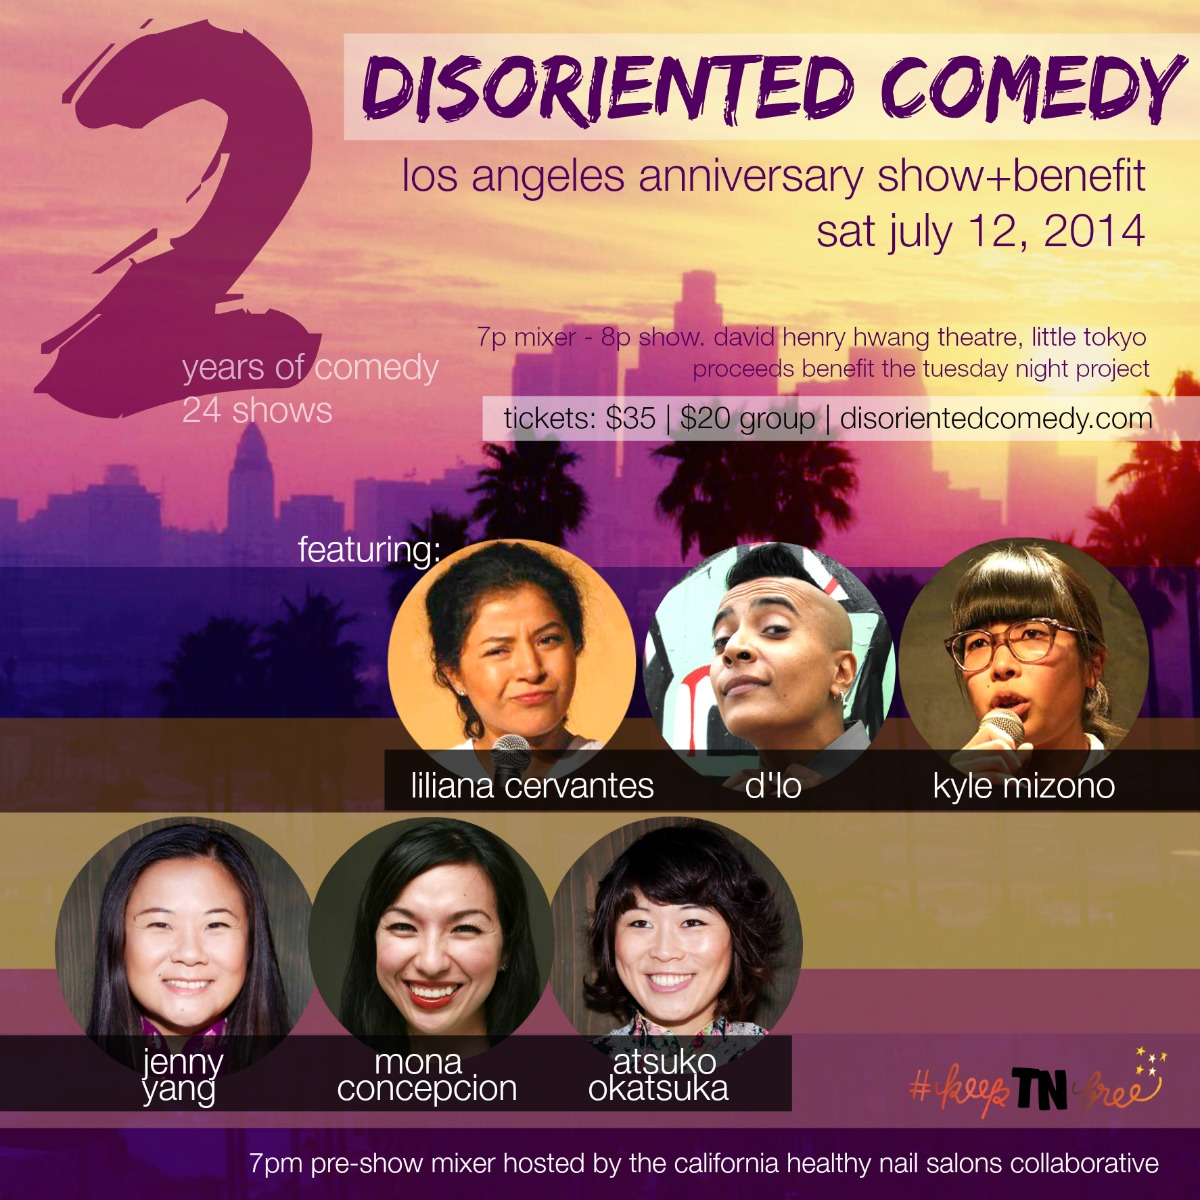 """Los Angeles: Saturday, July 12th, 2014.   TICKETS ON-SALE NOW. Discount code """"EARLYBIRD"""" for $5 tickets!  http://disorientedcomedy.com/   Disoriented Comedy 2-Year Anniversary Show+Benefit for  Tuesday Night Project    FB EVENT FOR UPDATES:  https://www.facebook.com/events/781360438563112/    SHOW + FUNDRAISER + COMEDY = PARTY"""